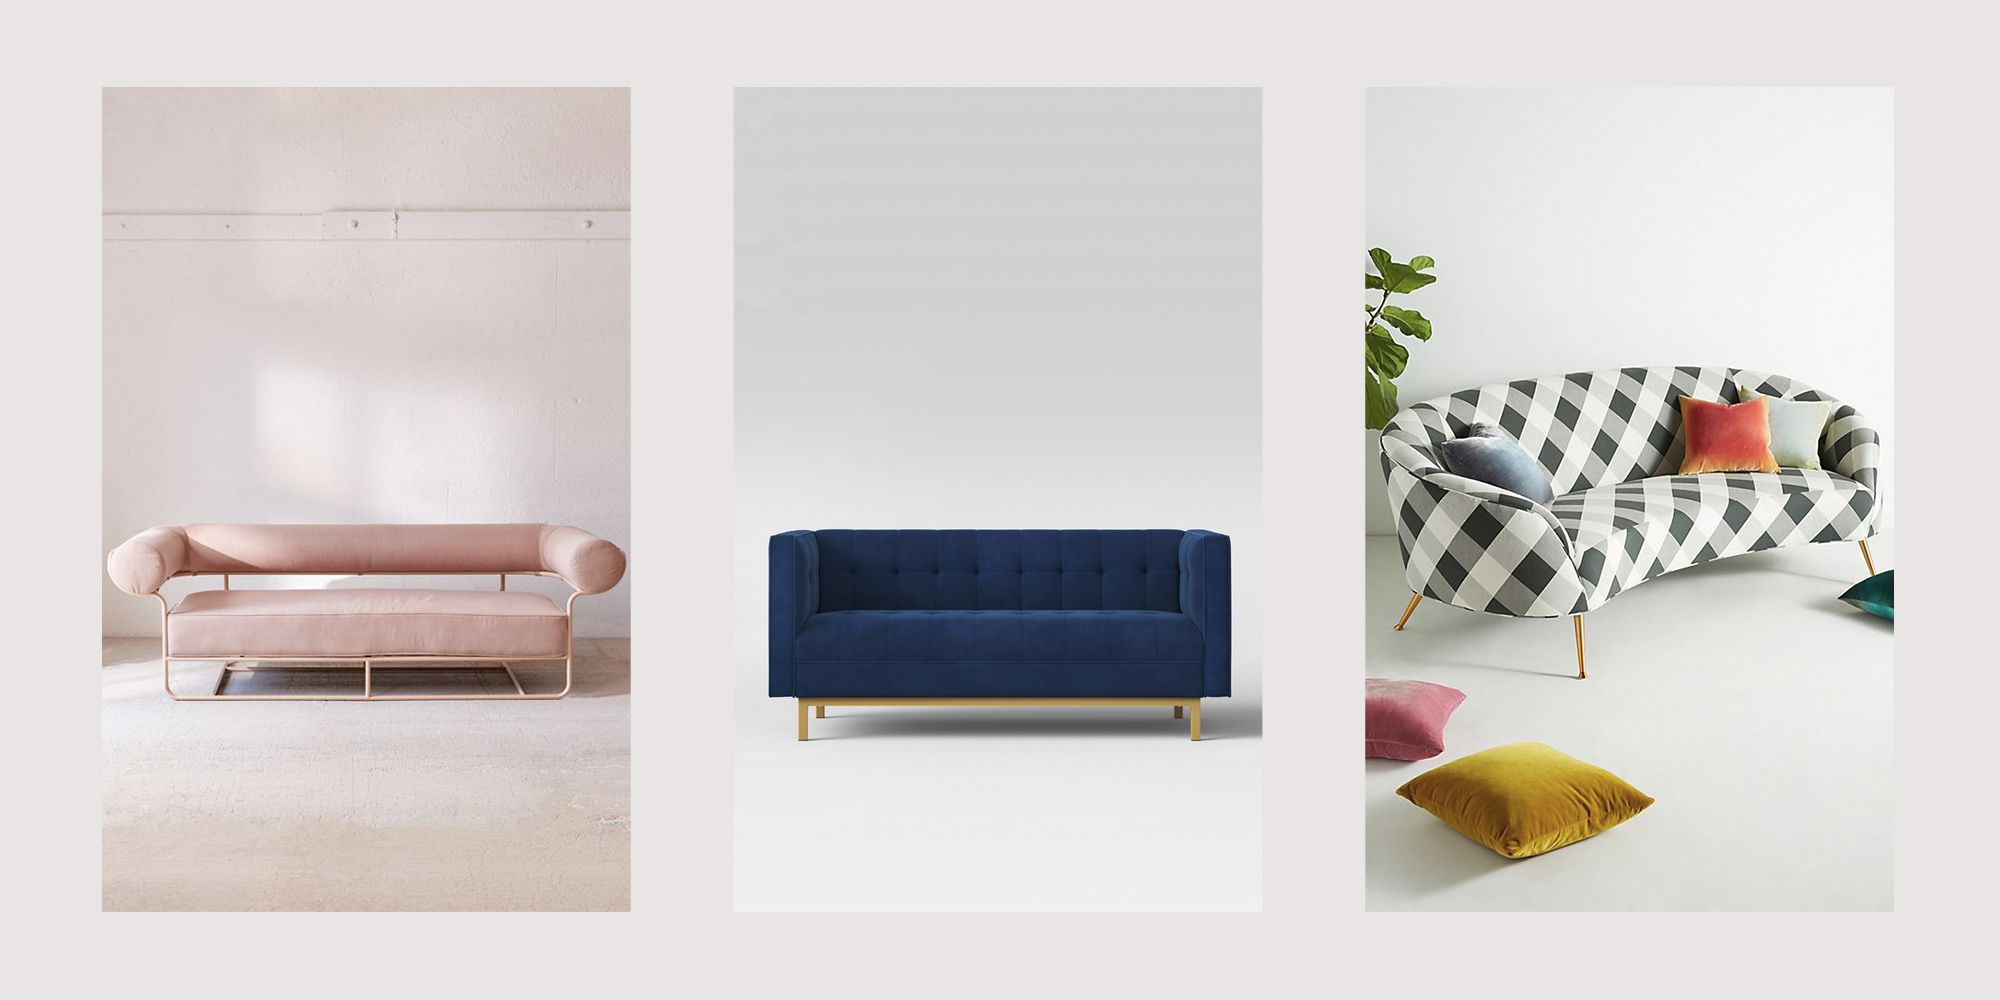 20 Modern Couches For Your Most Lavish Lounging